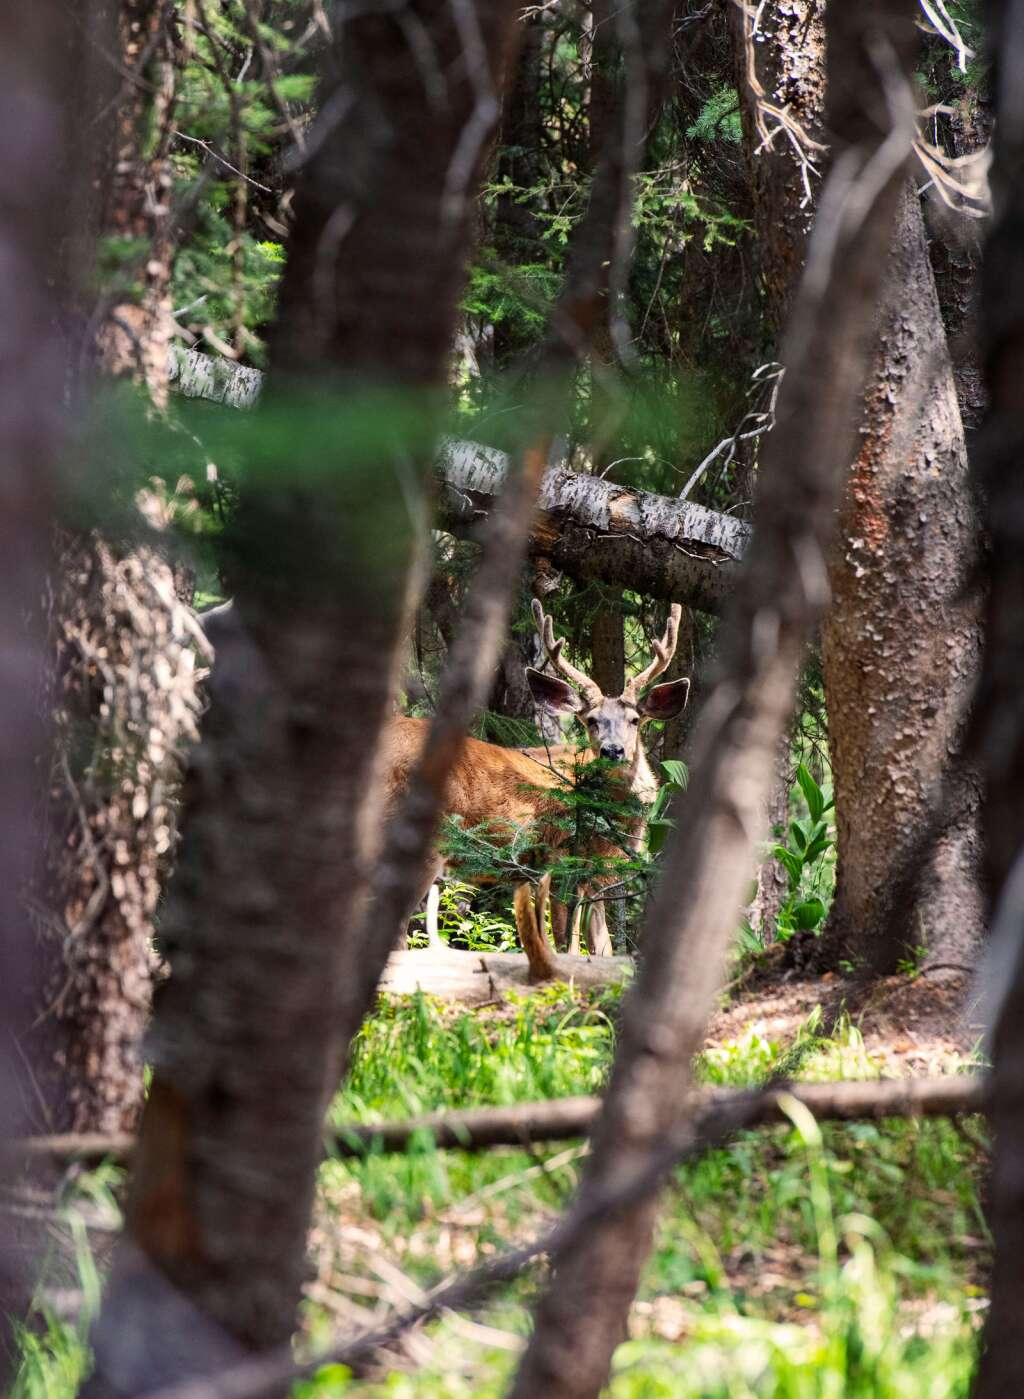 A buck peeks through fallen trees and brush inside of the proposed P15 trail of the Pandoras expansion on Aspen Mountain on Thursday, August 12, 2021. (Kelsey Brunner/The Aspen Times)